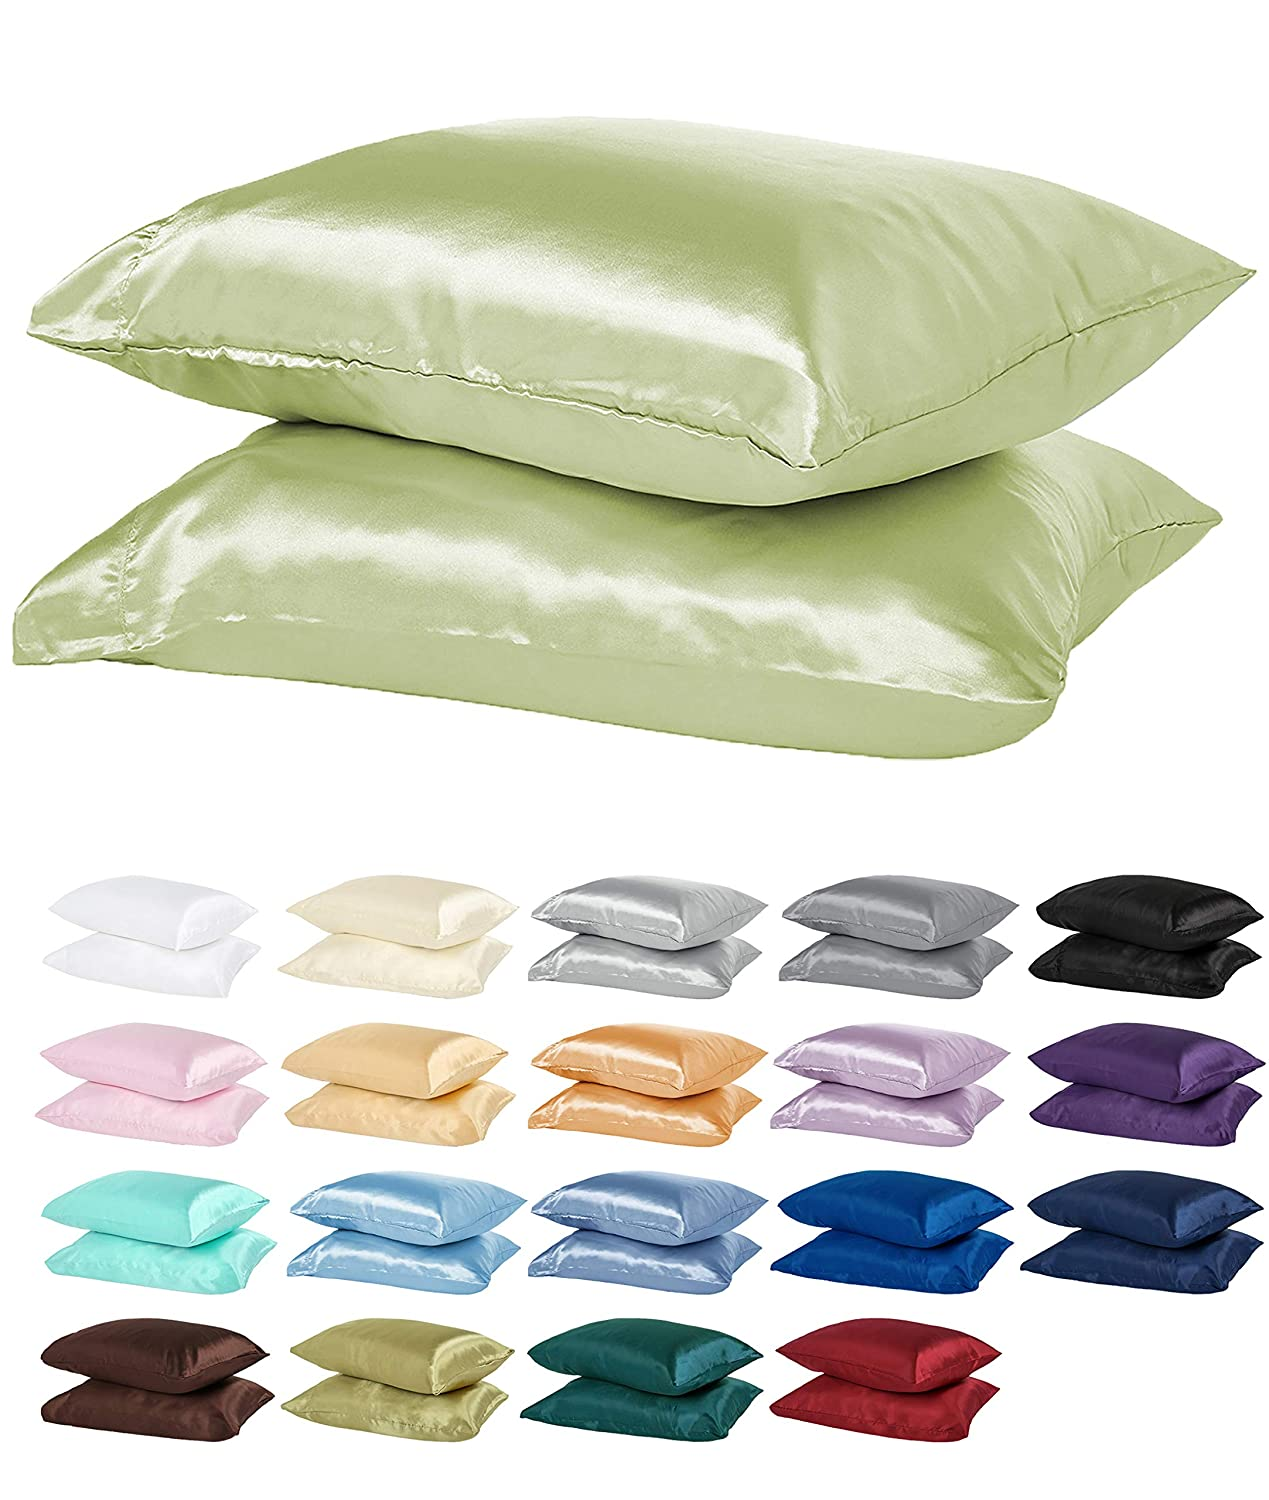 DreamHome Satin Pillow Case with Zipper, 2 Pillow Cases (Standard, Black)